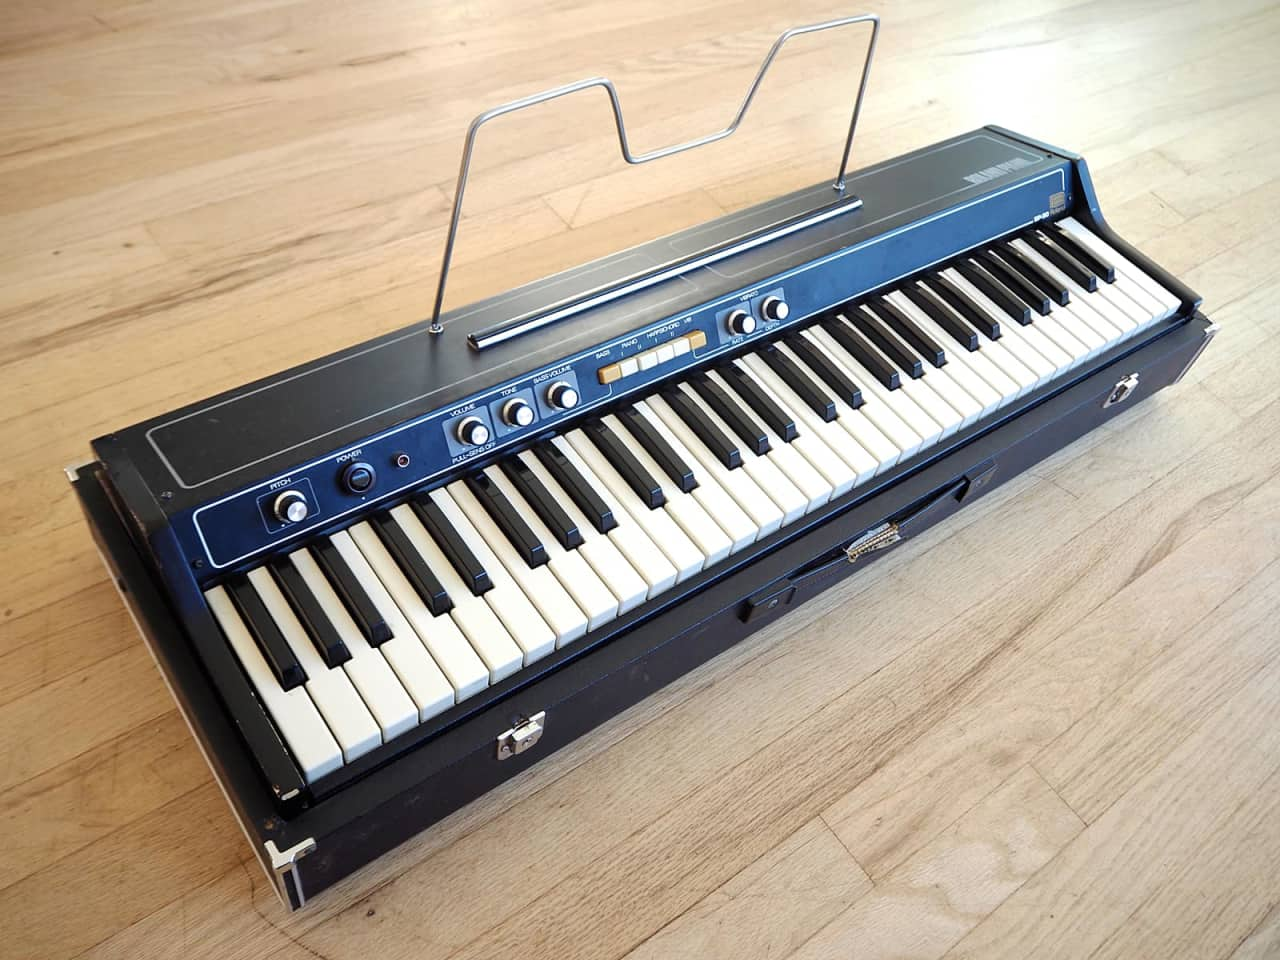 1970s roland ep 30 vintage electric piano w music stand reverb. Black Bedroom Furniture Sets. Home Design Ideas